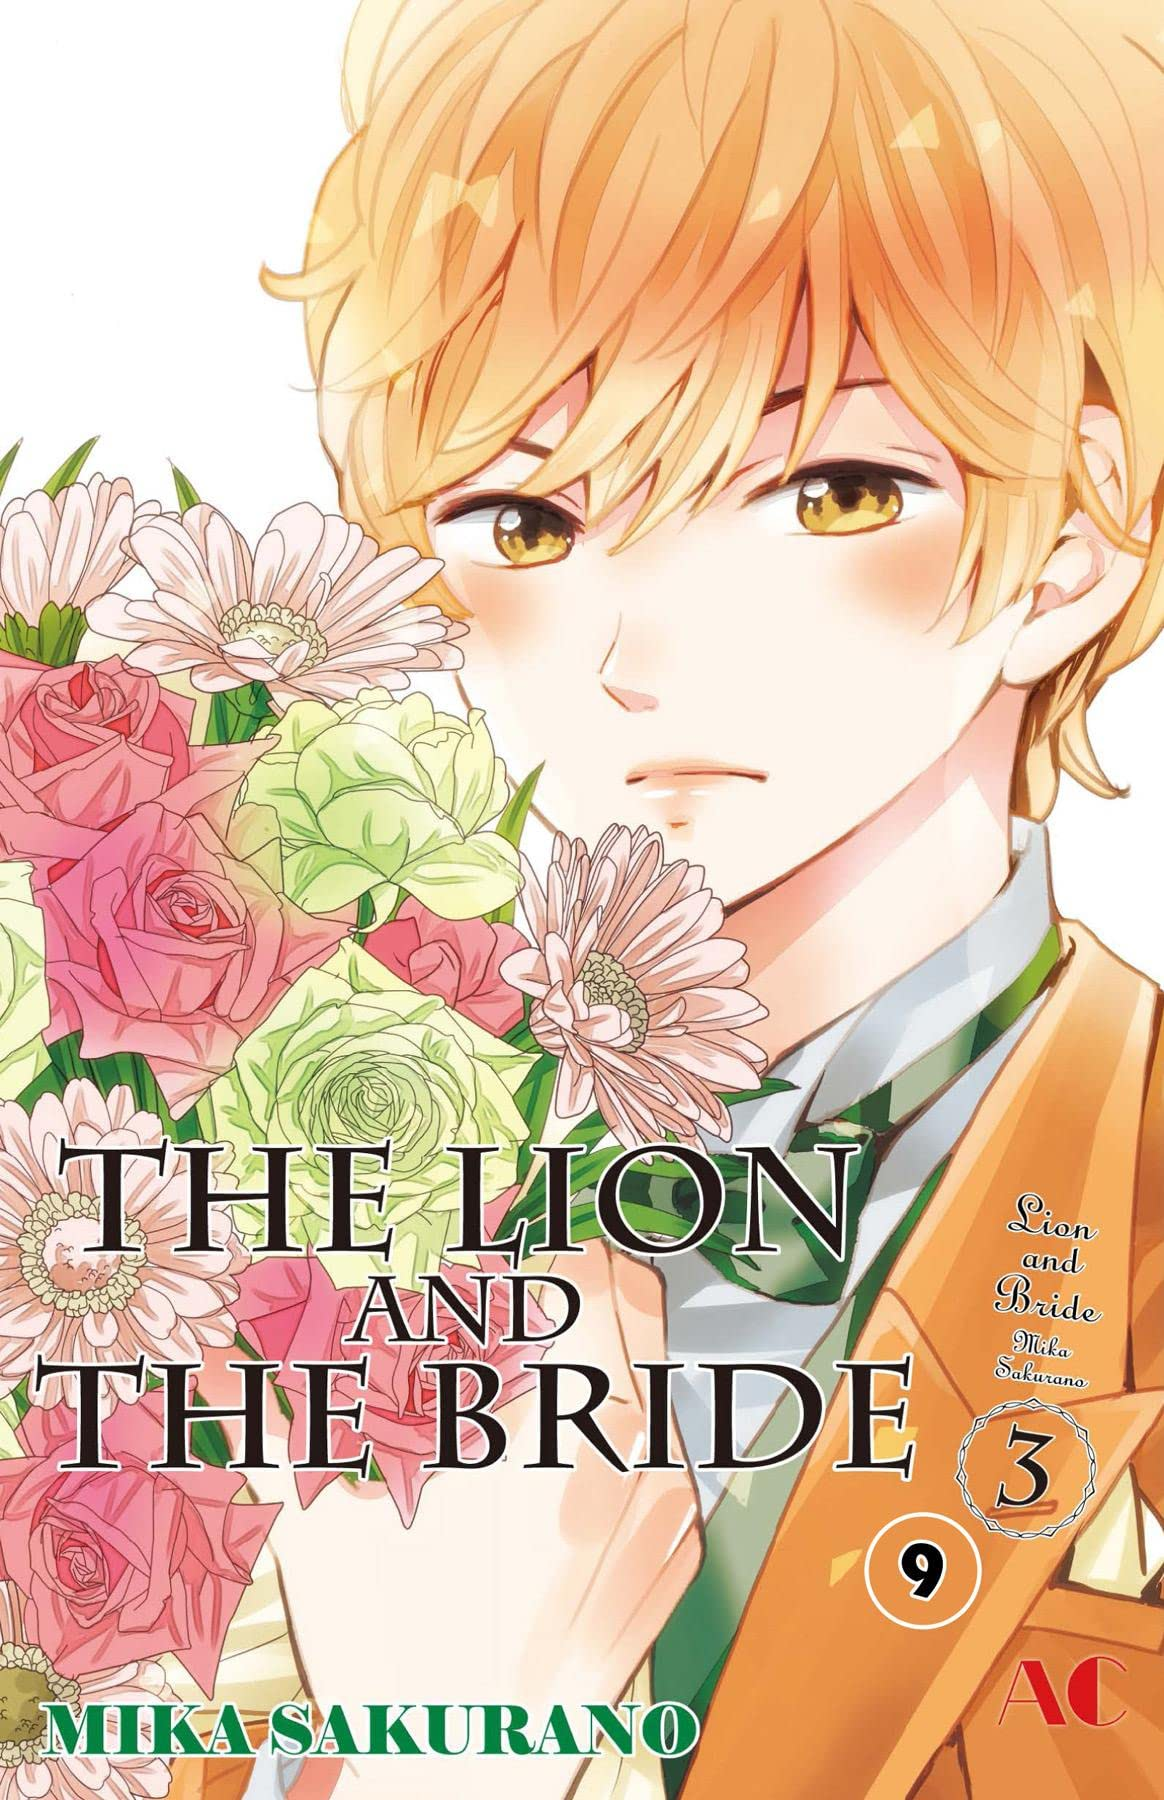 The Lion and the Bride #9